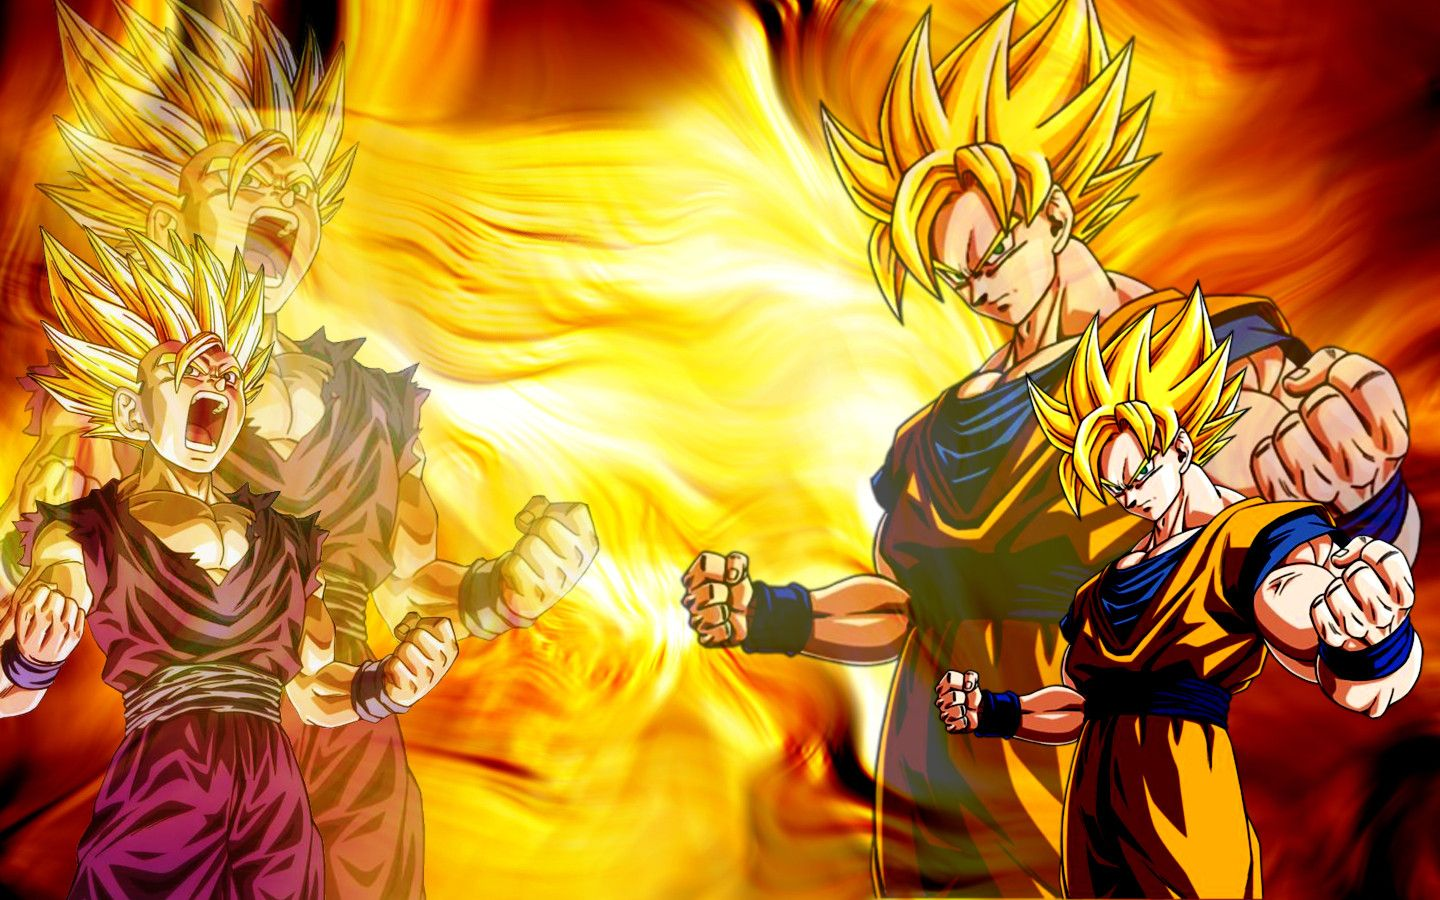 Dragon Ball Z Wallpapers Goku Super Saiyan 10 Free Download